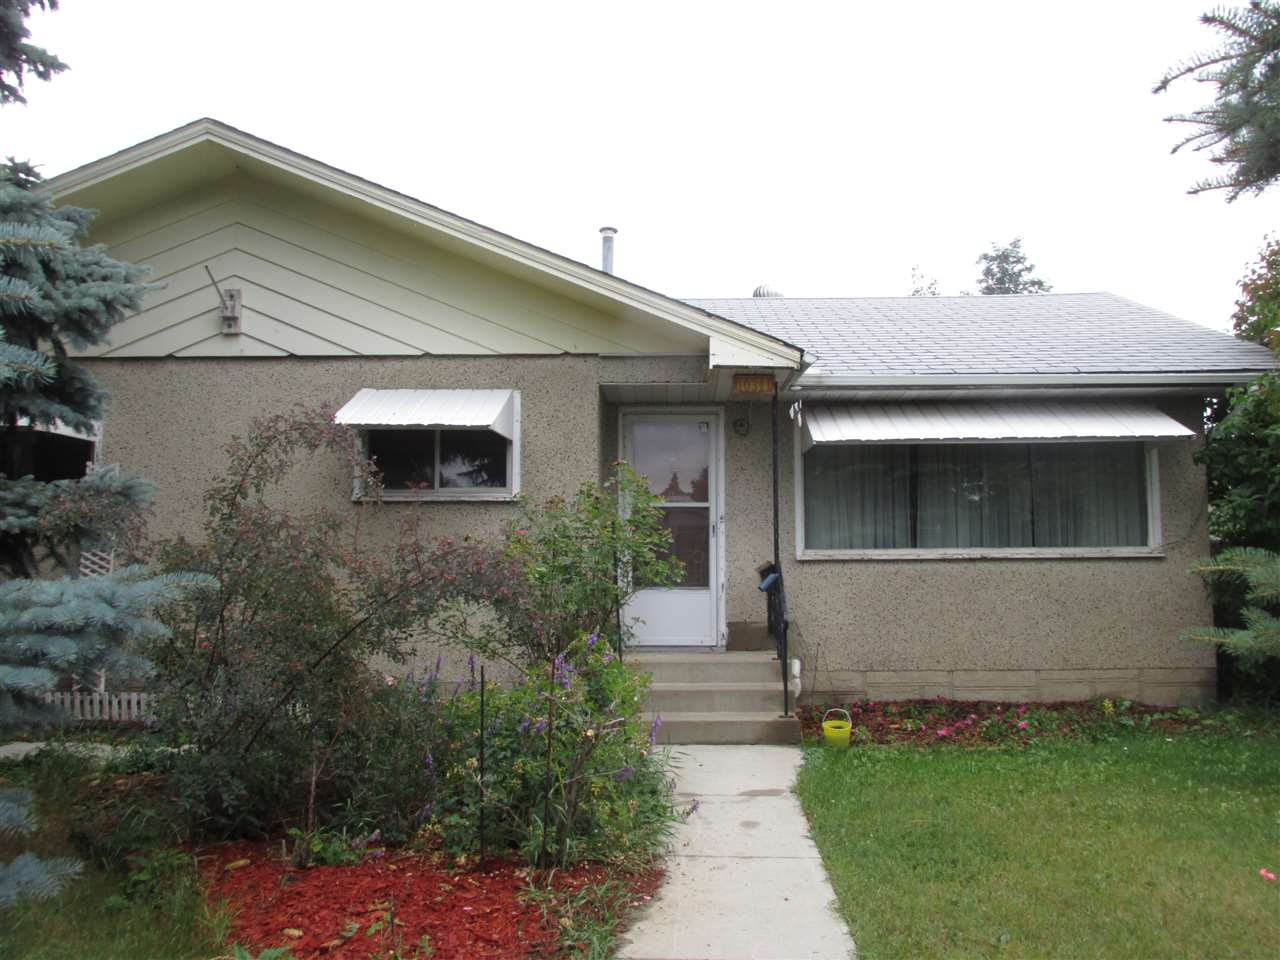 Main Photo: 10311 56 Street in Edmonton: Zone 19 House for sale : MLS(r) # E4074767